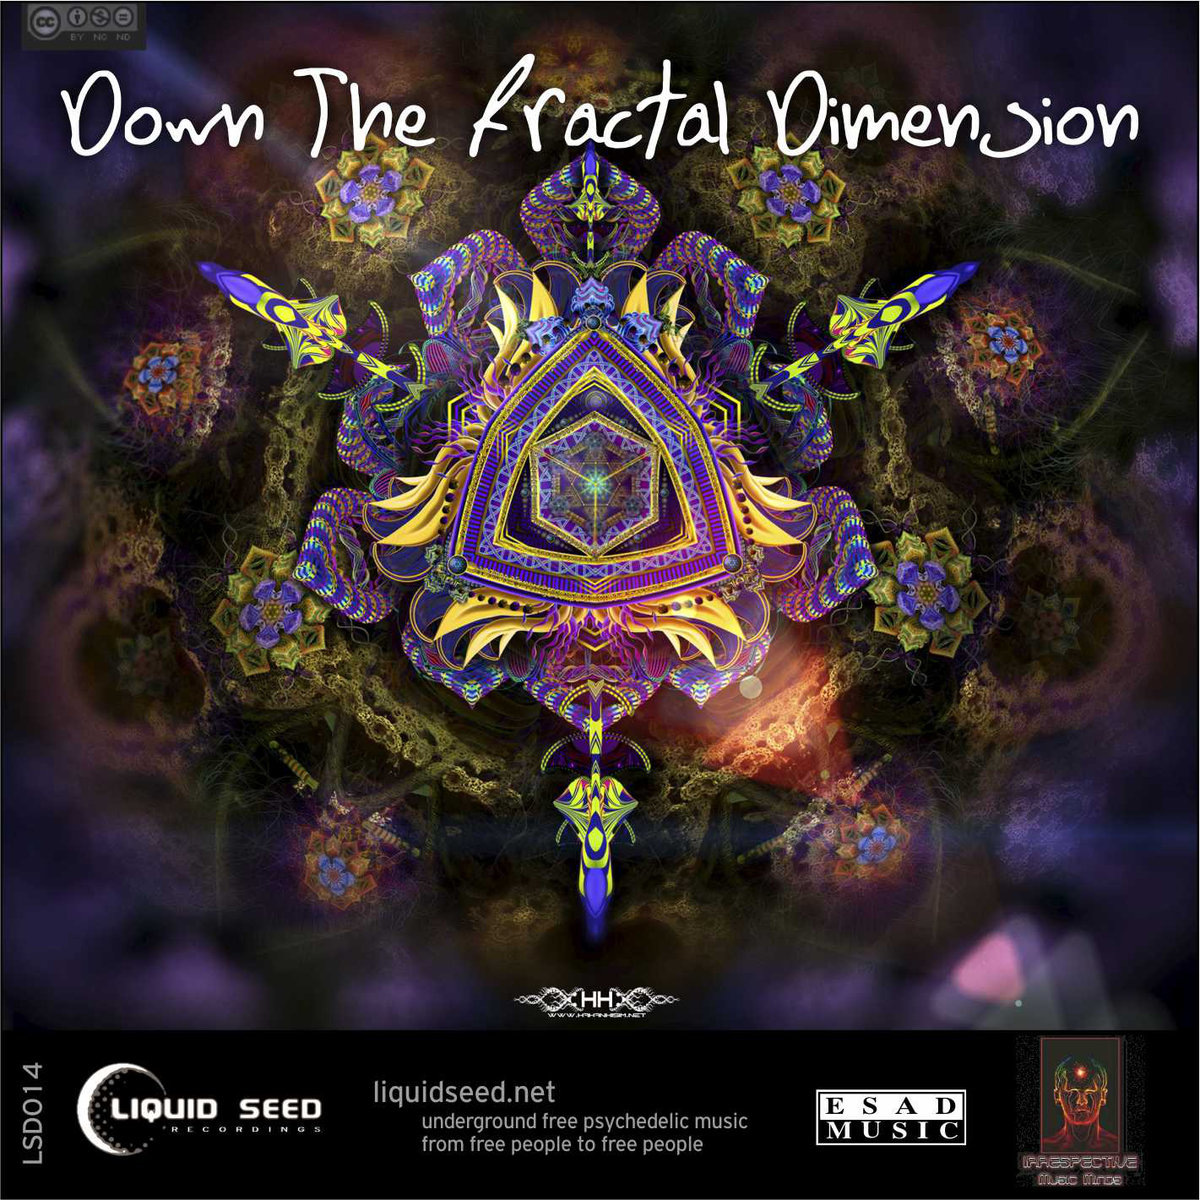 J.P.illusion - Fade Out @ 'VA - Down The Fractal Dimension' album (alternative, chill out)